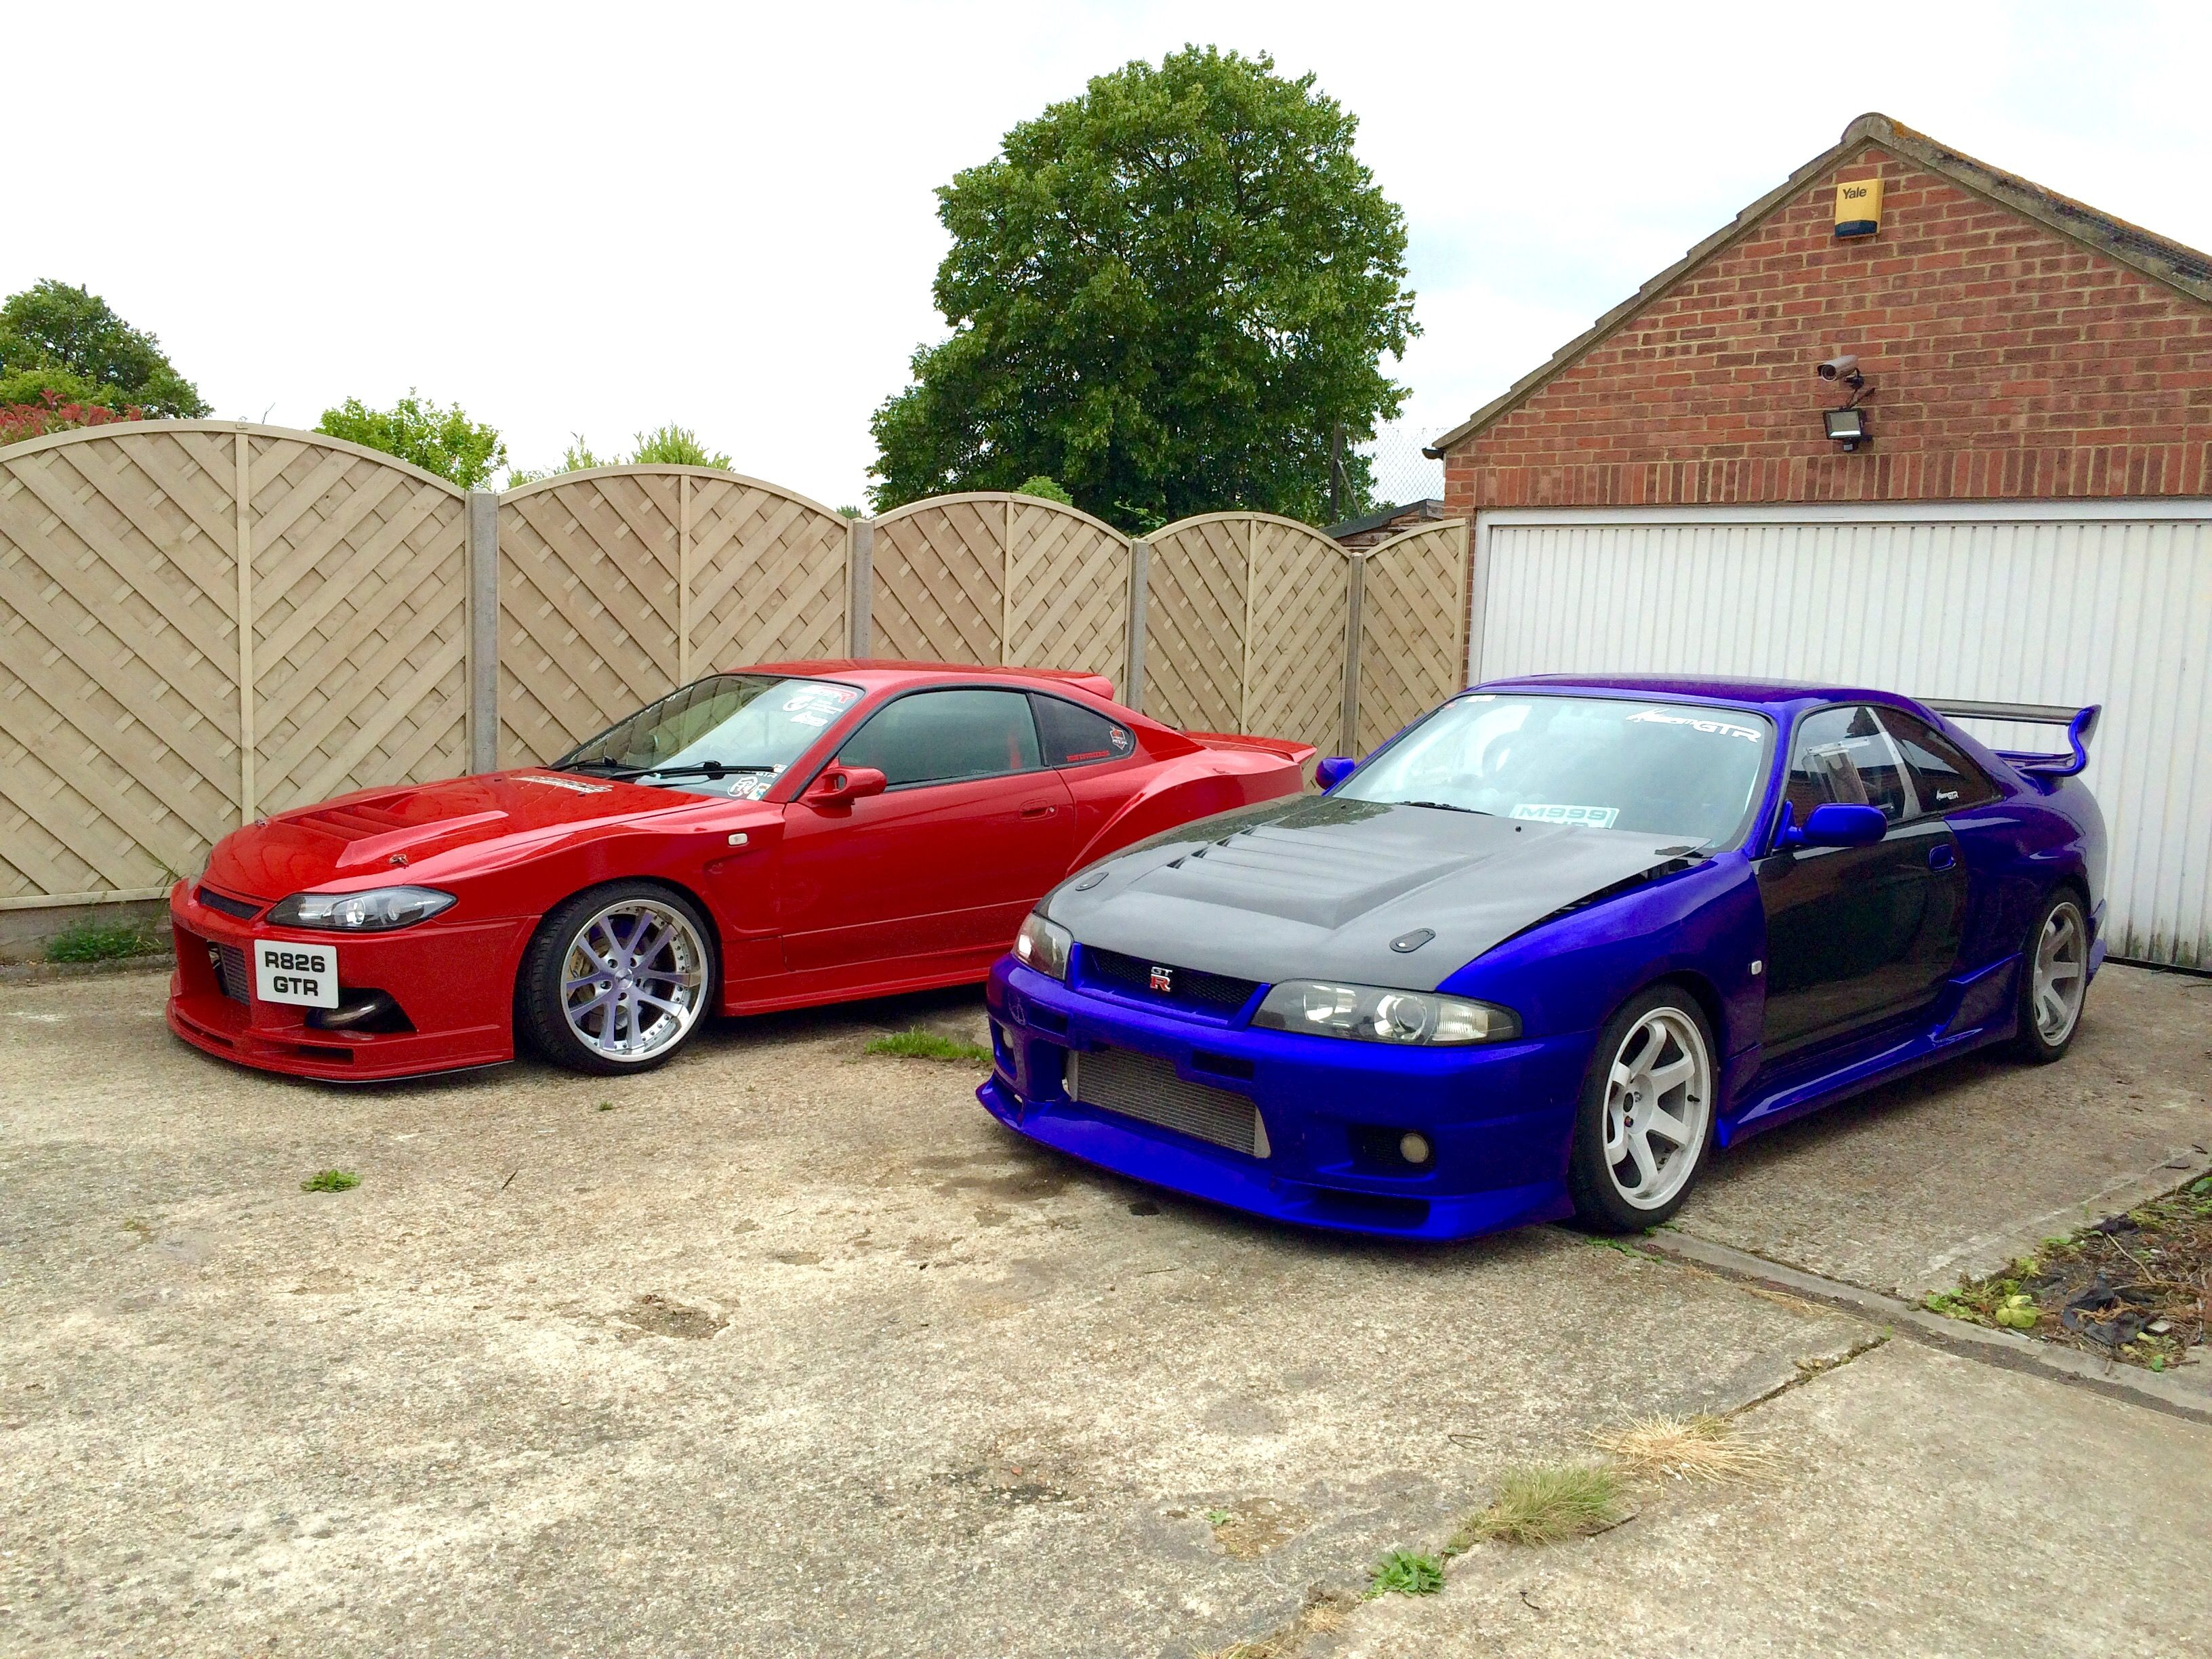 My Nissan Skyline R33 Gtr Bcnr33 Parked Next To My Kazama